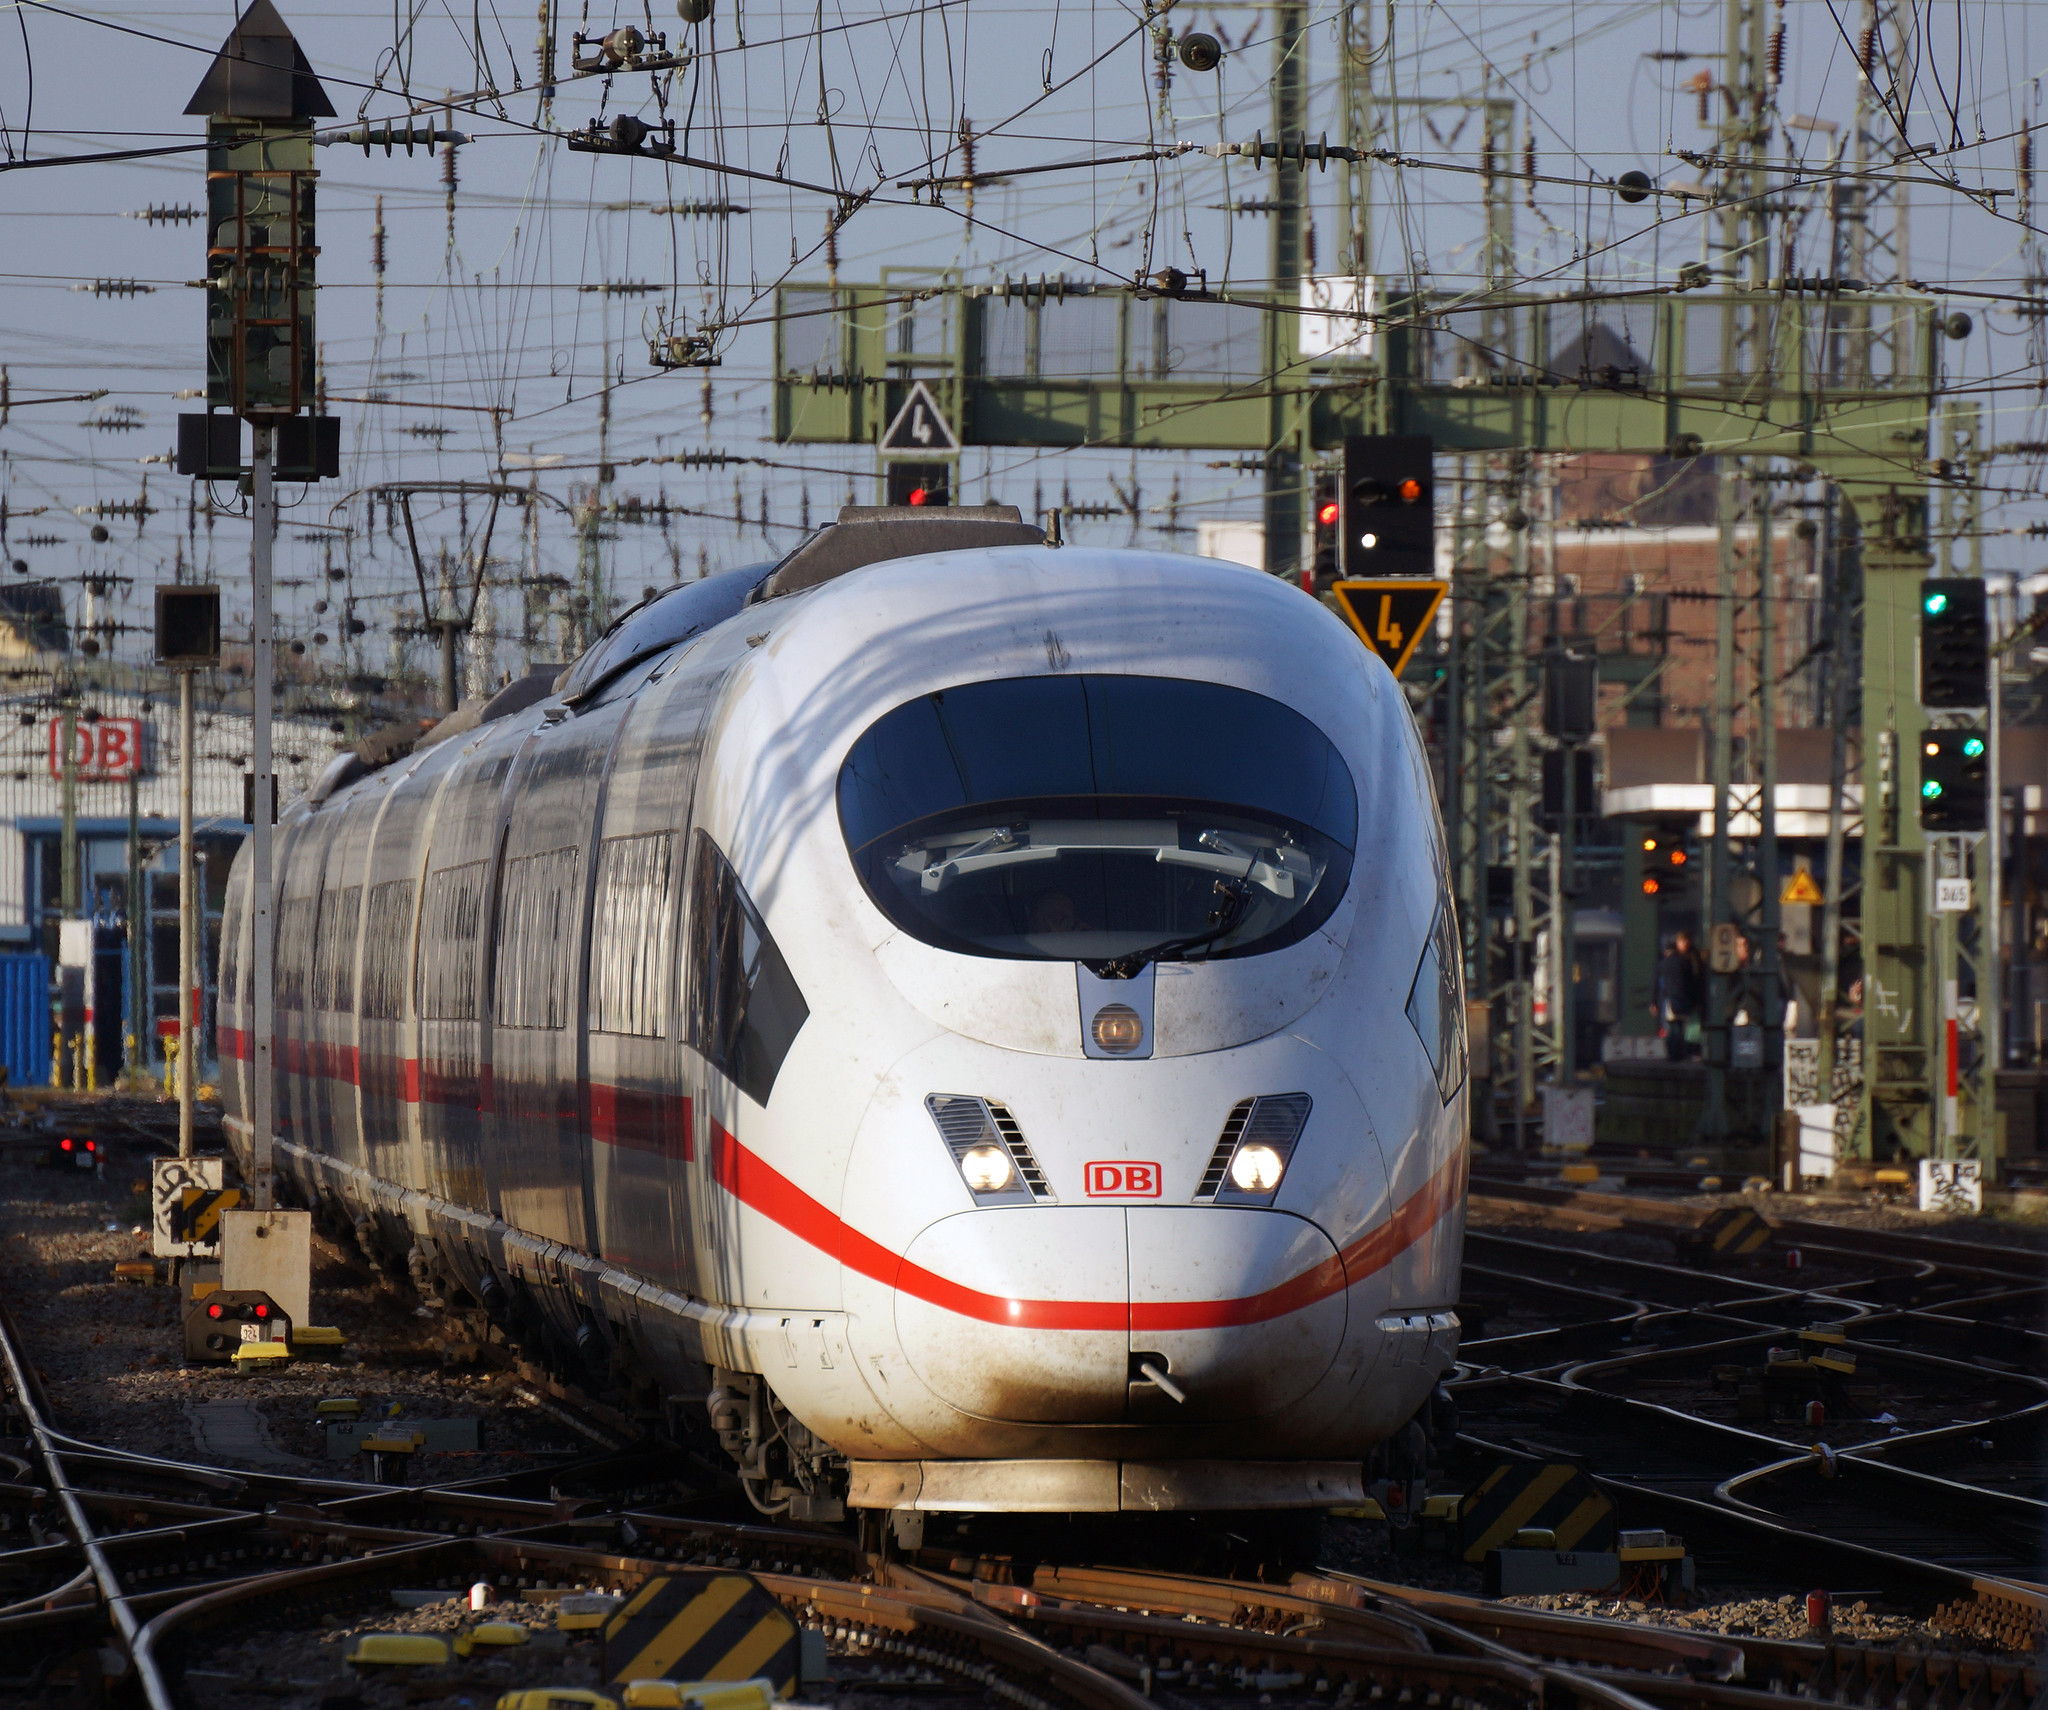 DBAG ICE 3 in the near of Cologne main station. Photo taken by Rolf Heinrich on December 17, 2015.